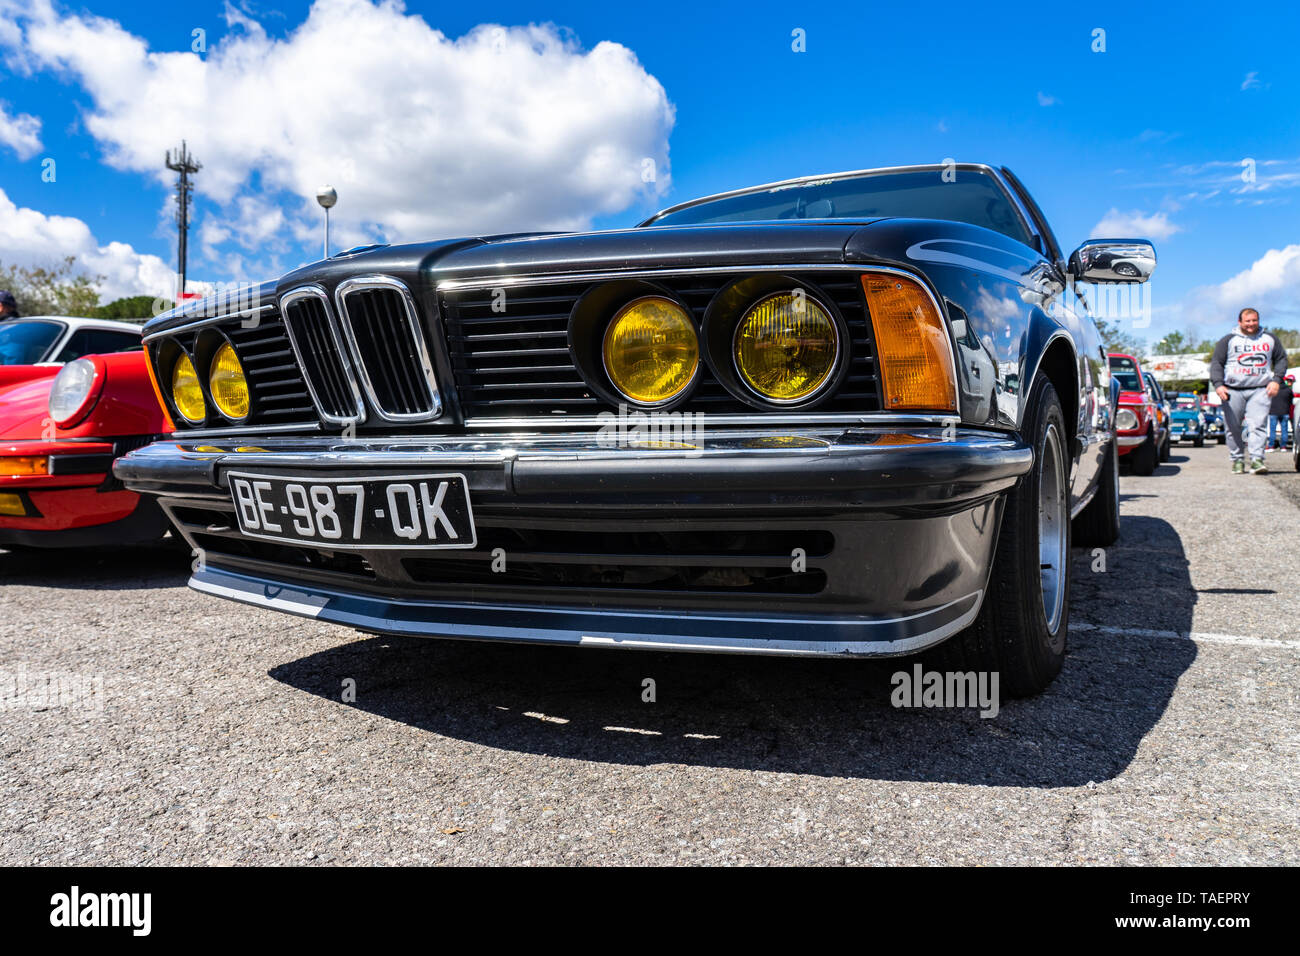 Bmw 635 Csi High Resolution Stock Photography And Images Alamy